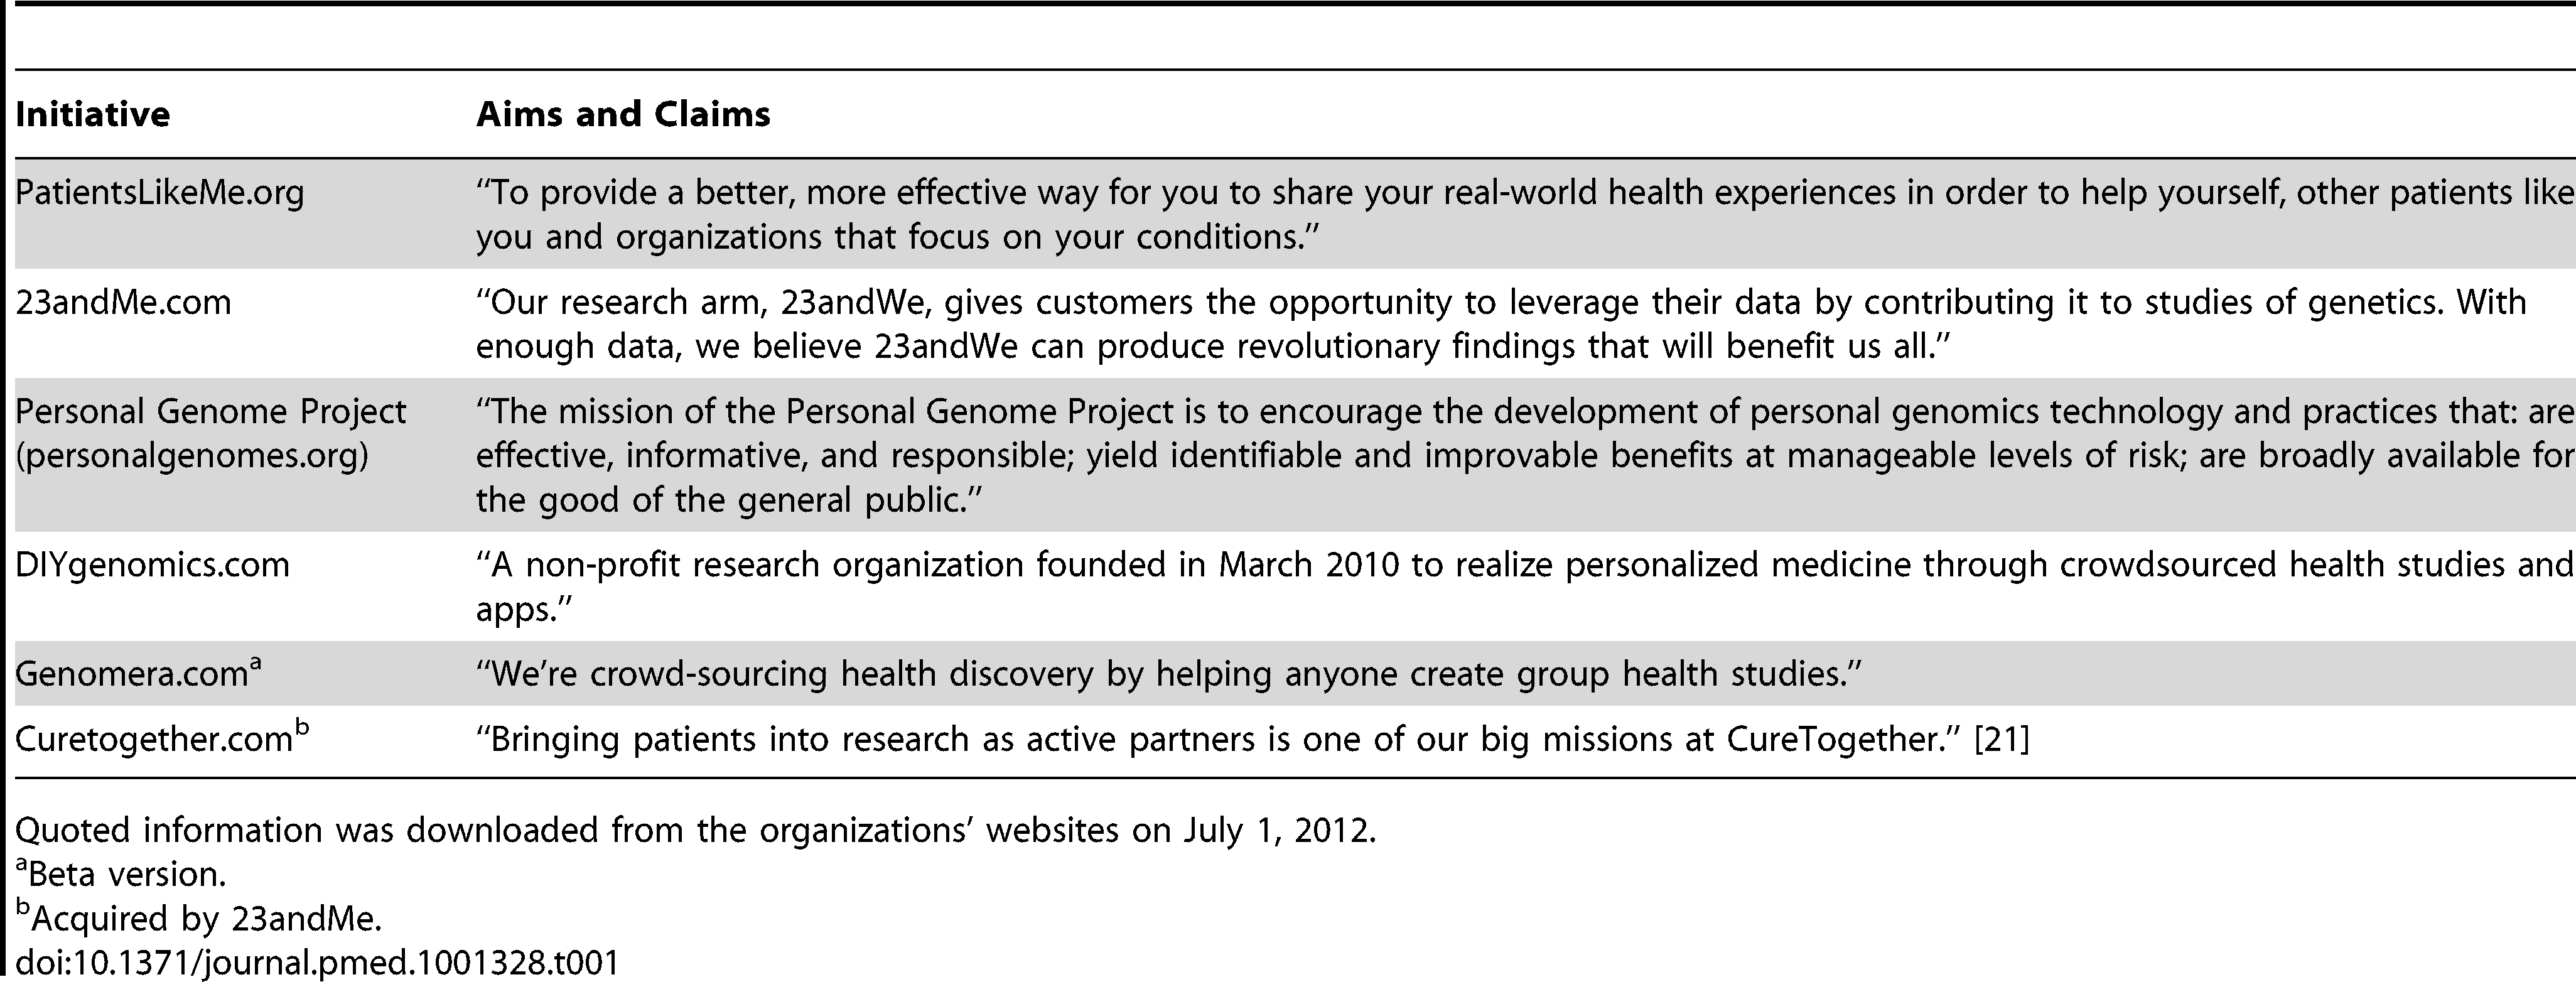 Examples of online research initiatives.